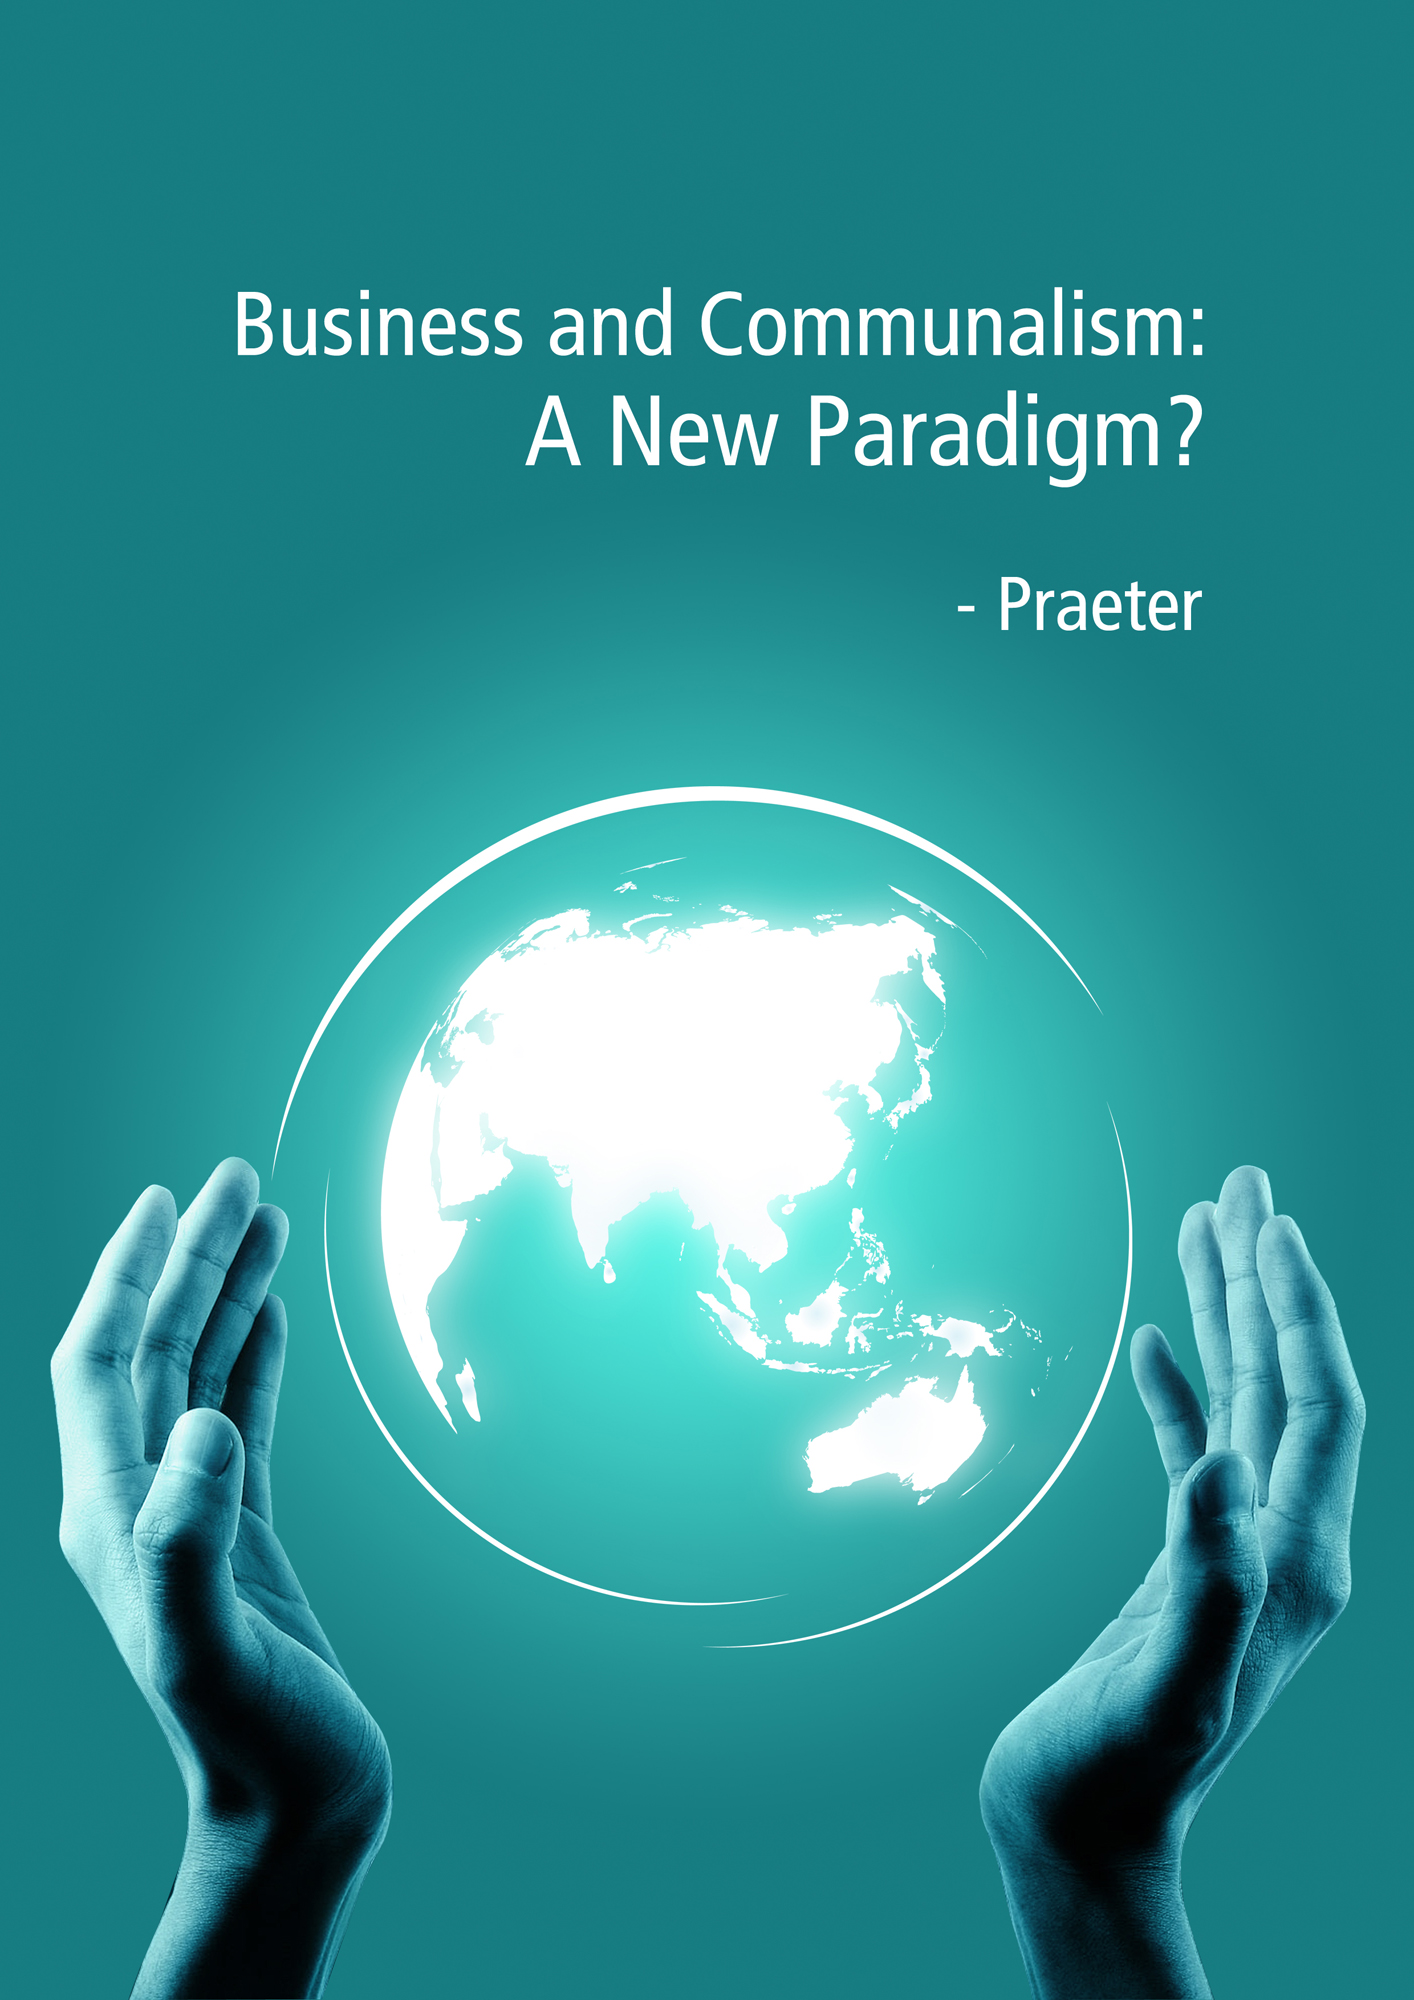 Business and Communalism A new paradigm?